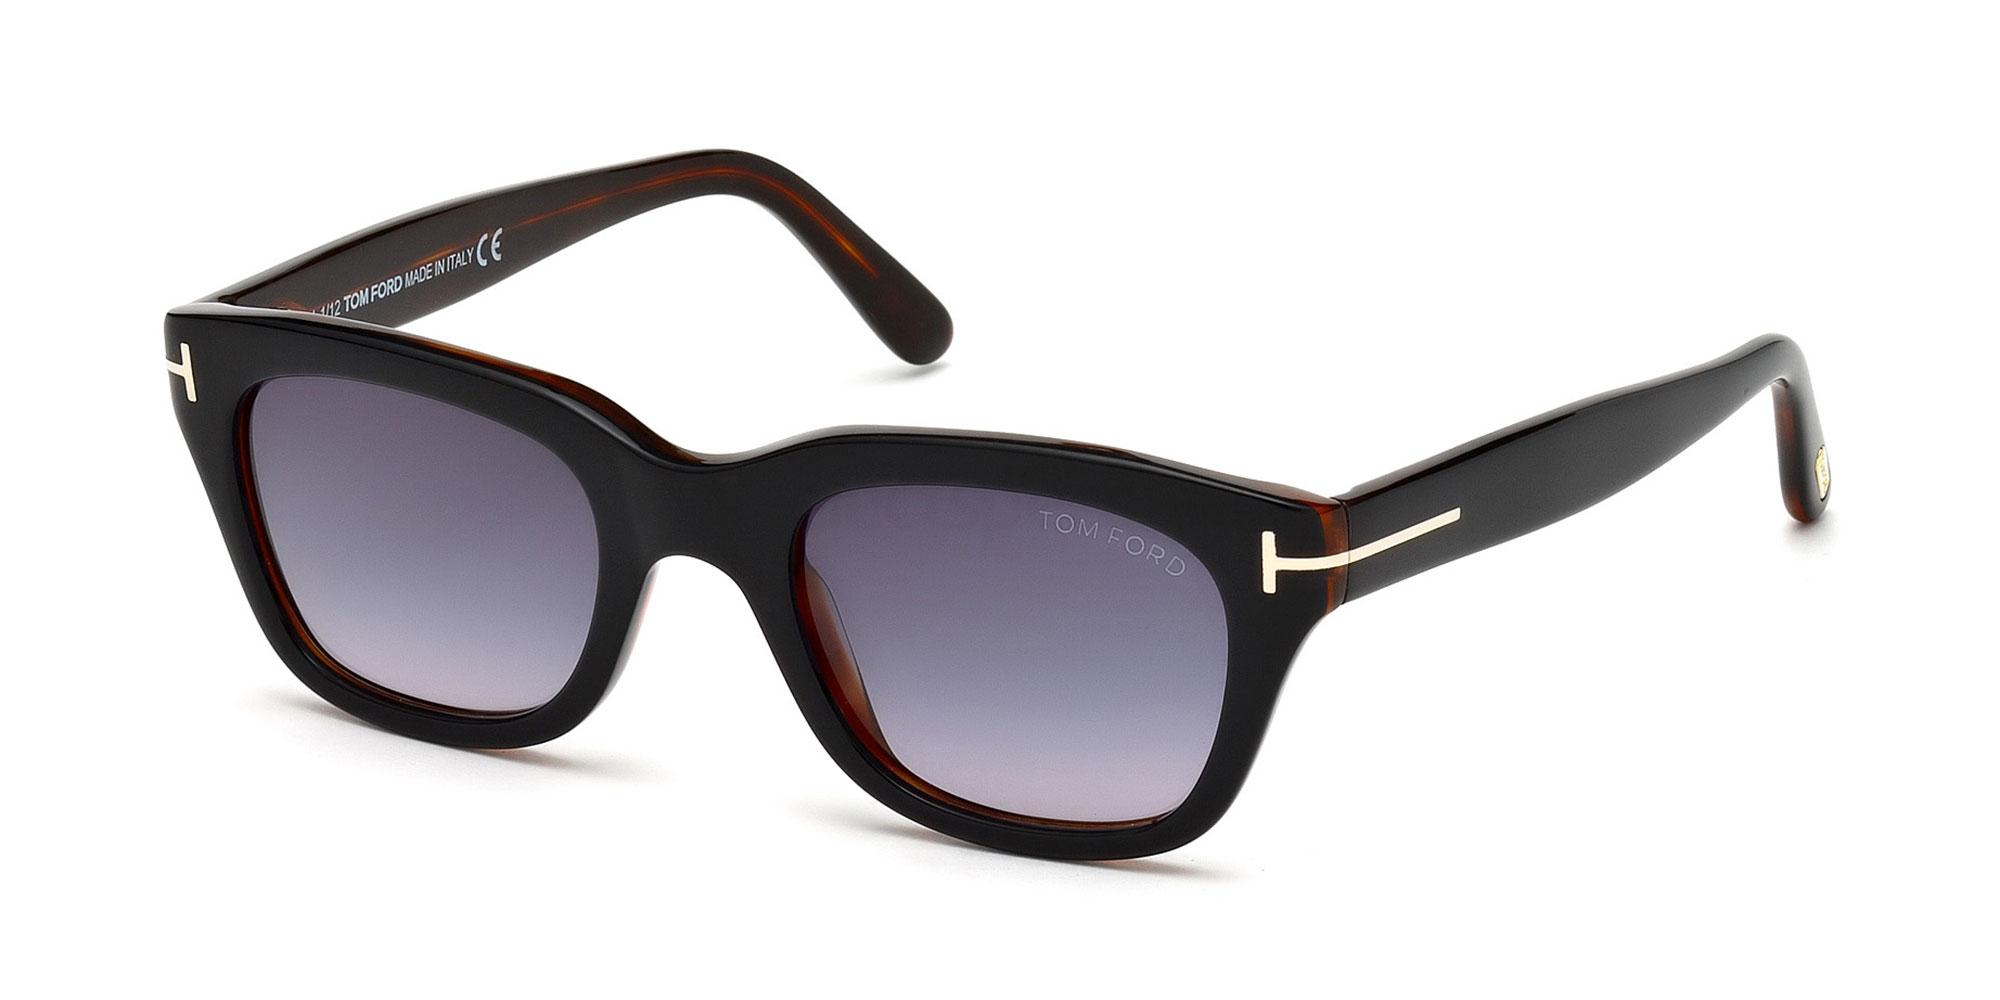 af38945ae905 Tom Ford Sunglasses James Bond 007 Spectre